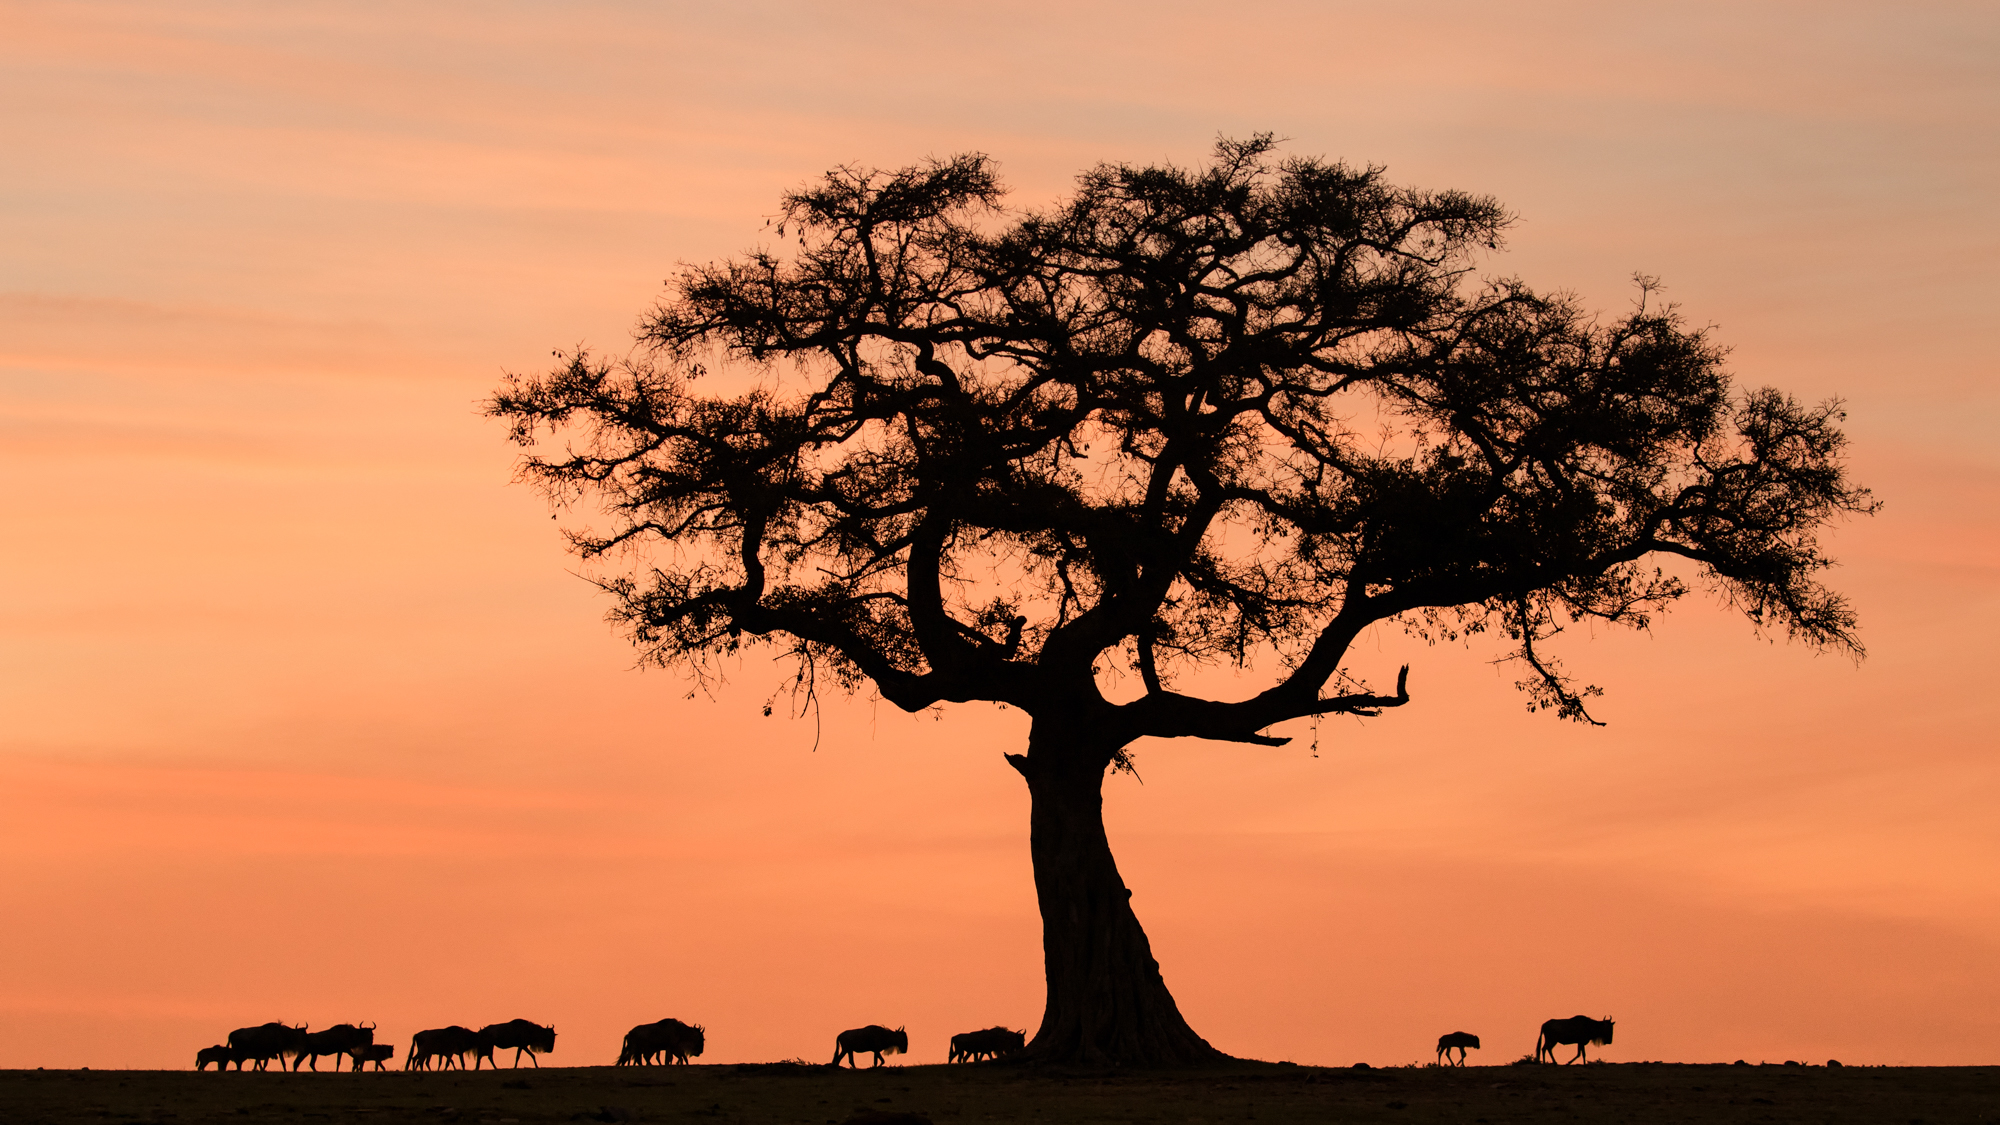 Silhouette of a tree and wildebeest in the dawn light.